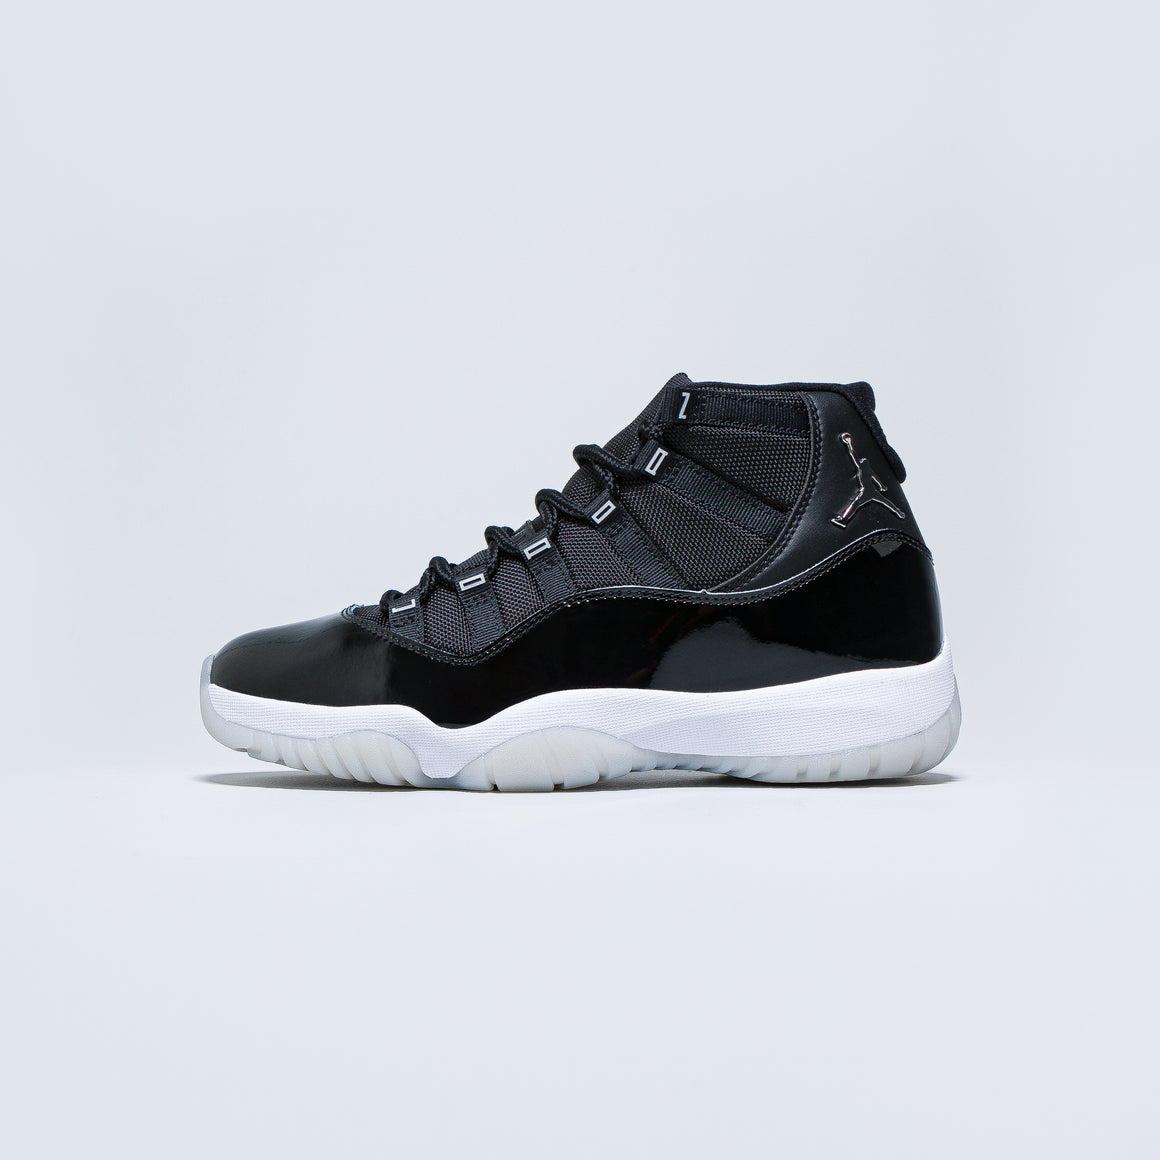 Jordan - Air Jordan 11 Retro - Black/Multi-Colour-Multi-Colour - Up There